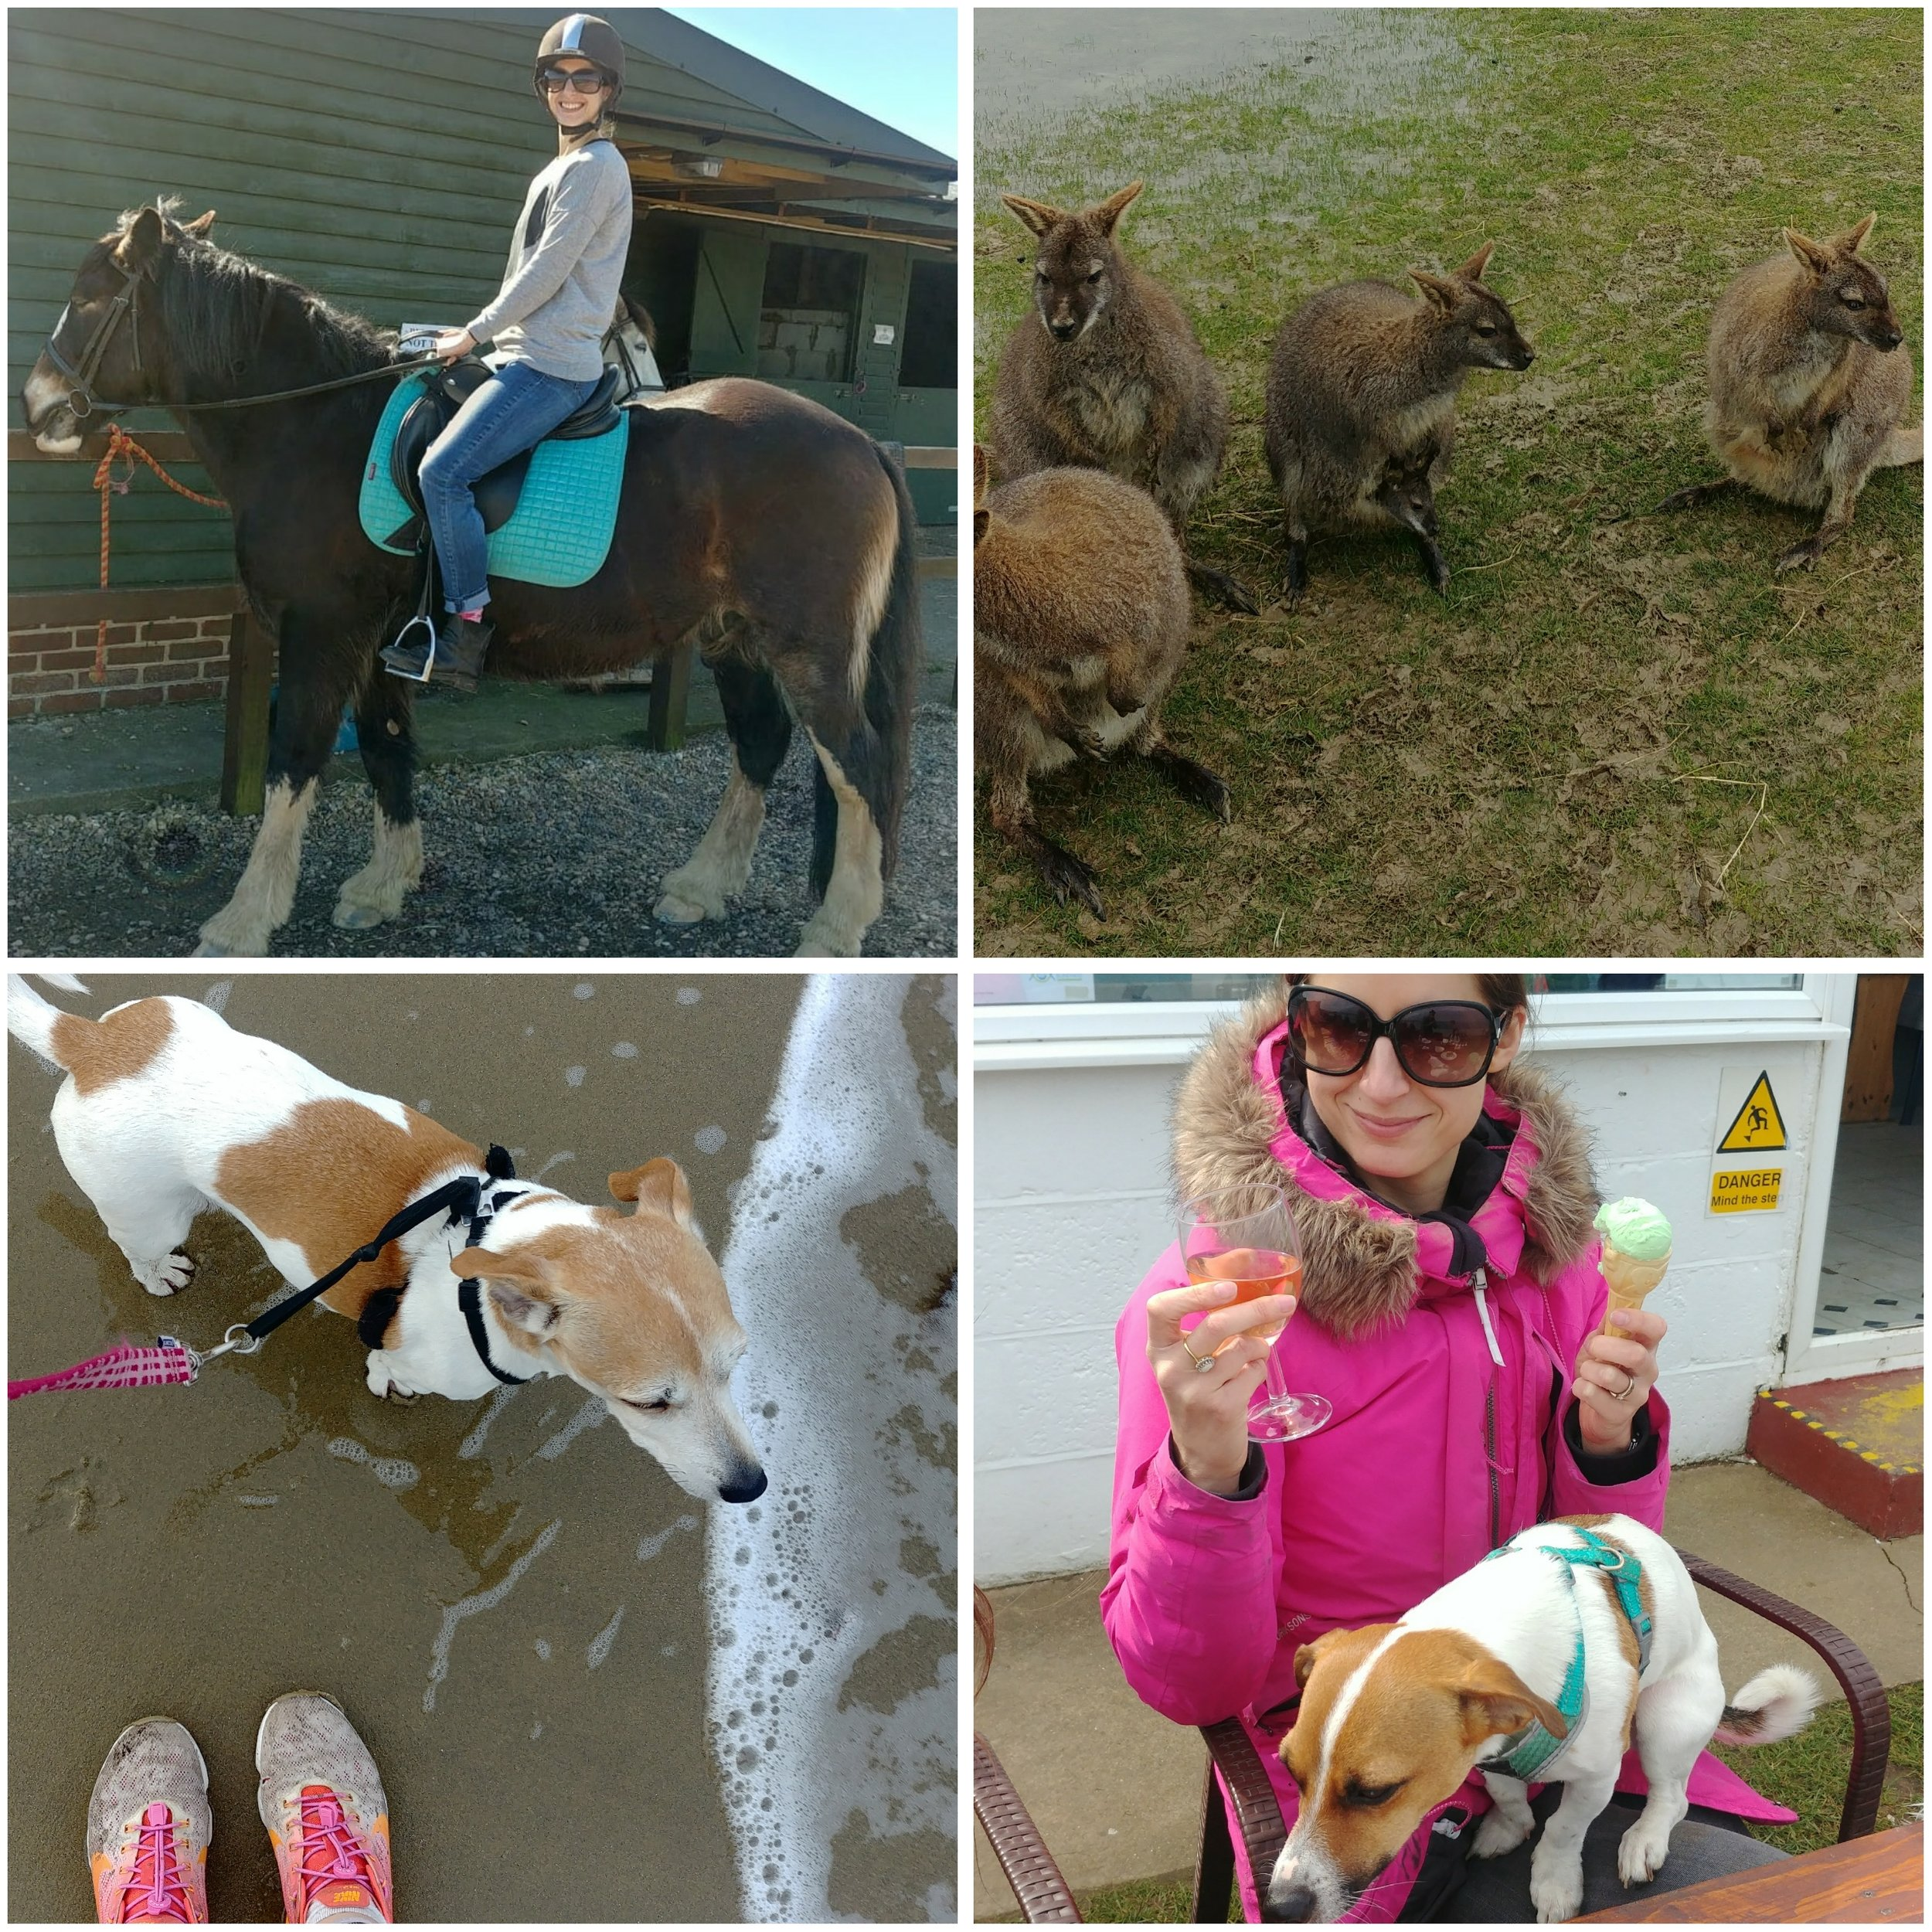 My first ever time on a horse (pony?), wallabies at Tapley Farm (can you see the baby? Nature is ace), running with my partner on the beach, and having beachside snacks with naughty Cookie puppy.